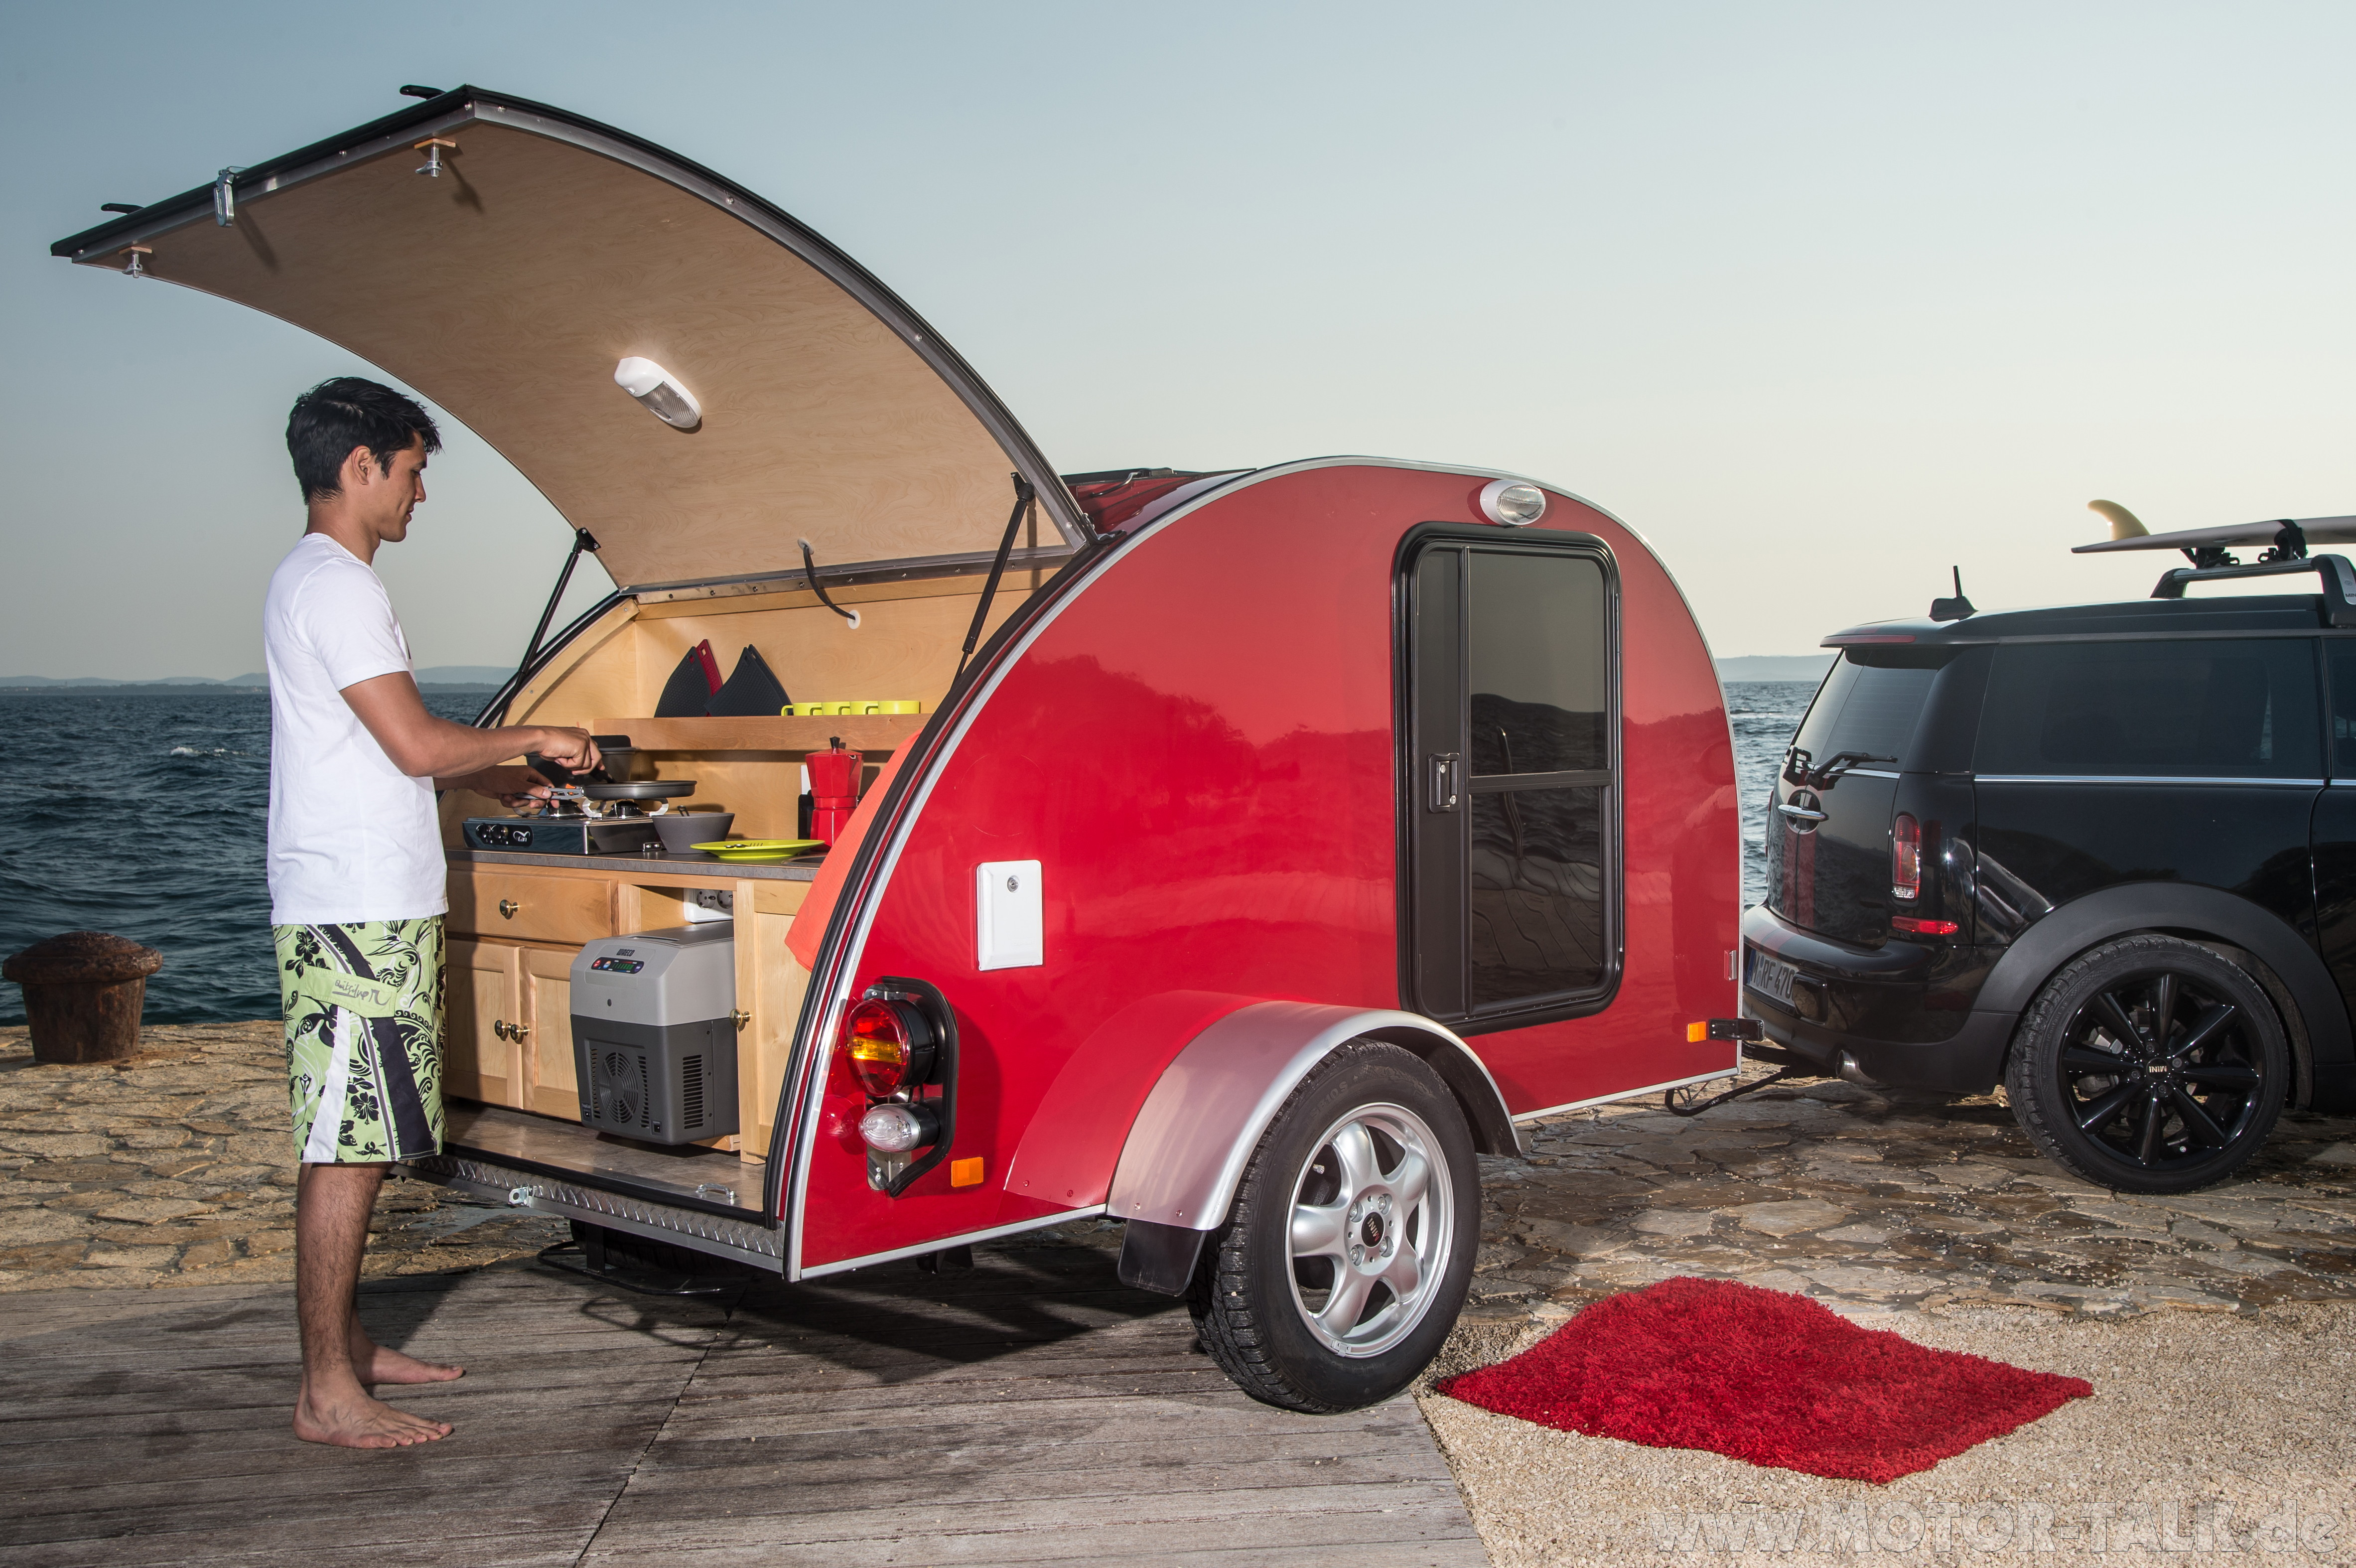 Luxury  Of Camping Trailers In Indiajeepcamperextremetraileditionjpg